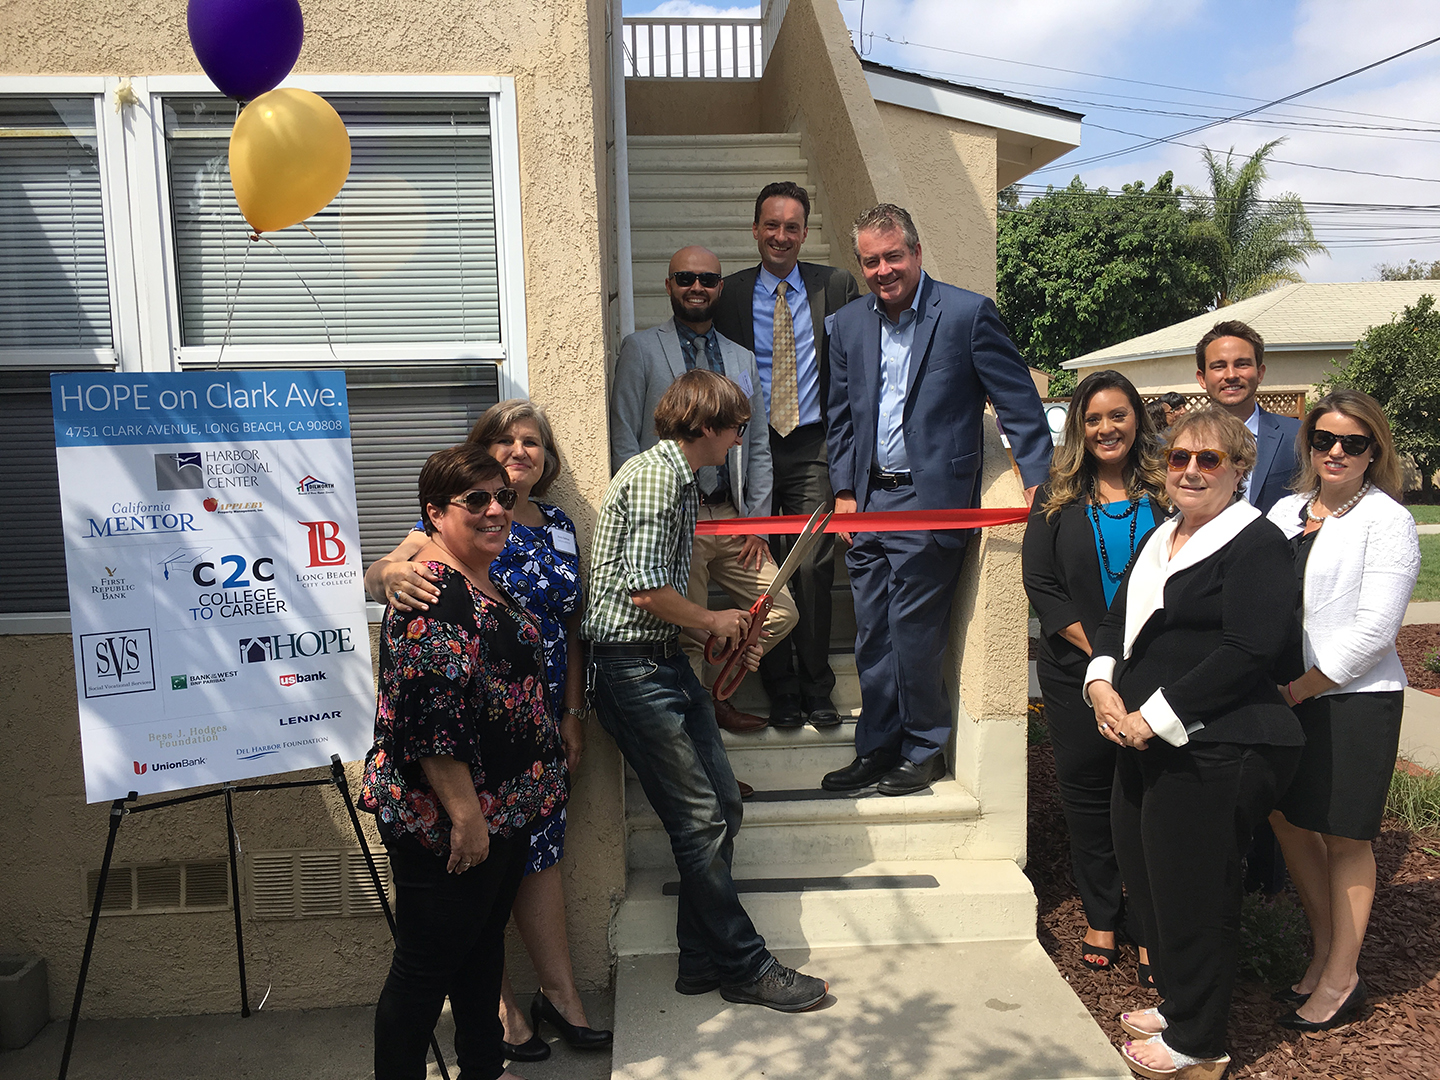 From left: Angela Rodriguez, Dana Delman, Jake Perry, Dr. Mike Munoz, Kristin Martin, Assemblymember Patrick O'Donnell, Herlinda Chico, Patricia Del Monico, Clayton Heard, Elizabeth McCann.